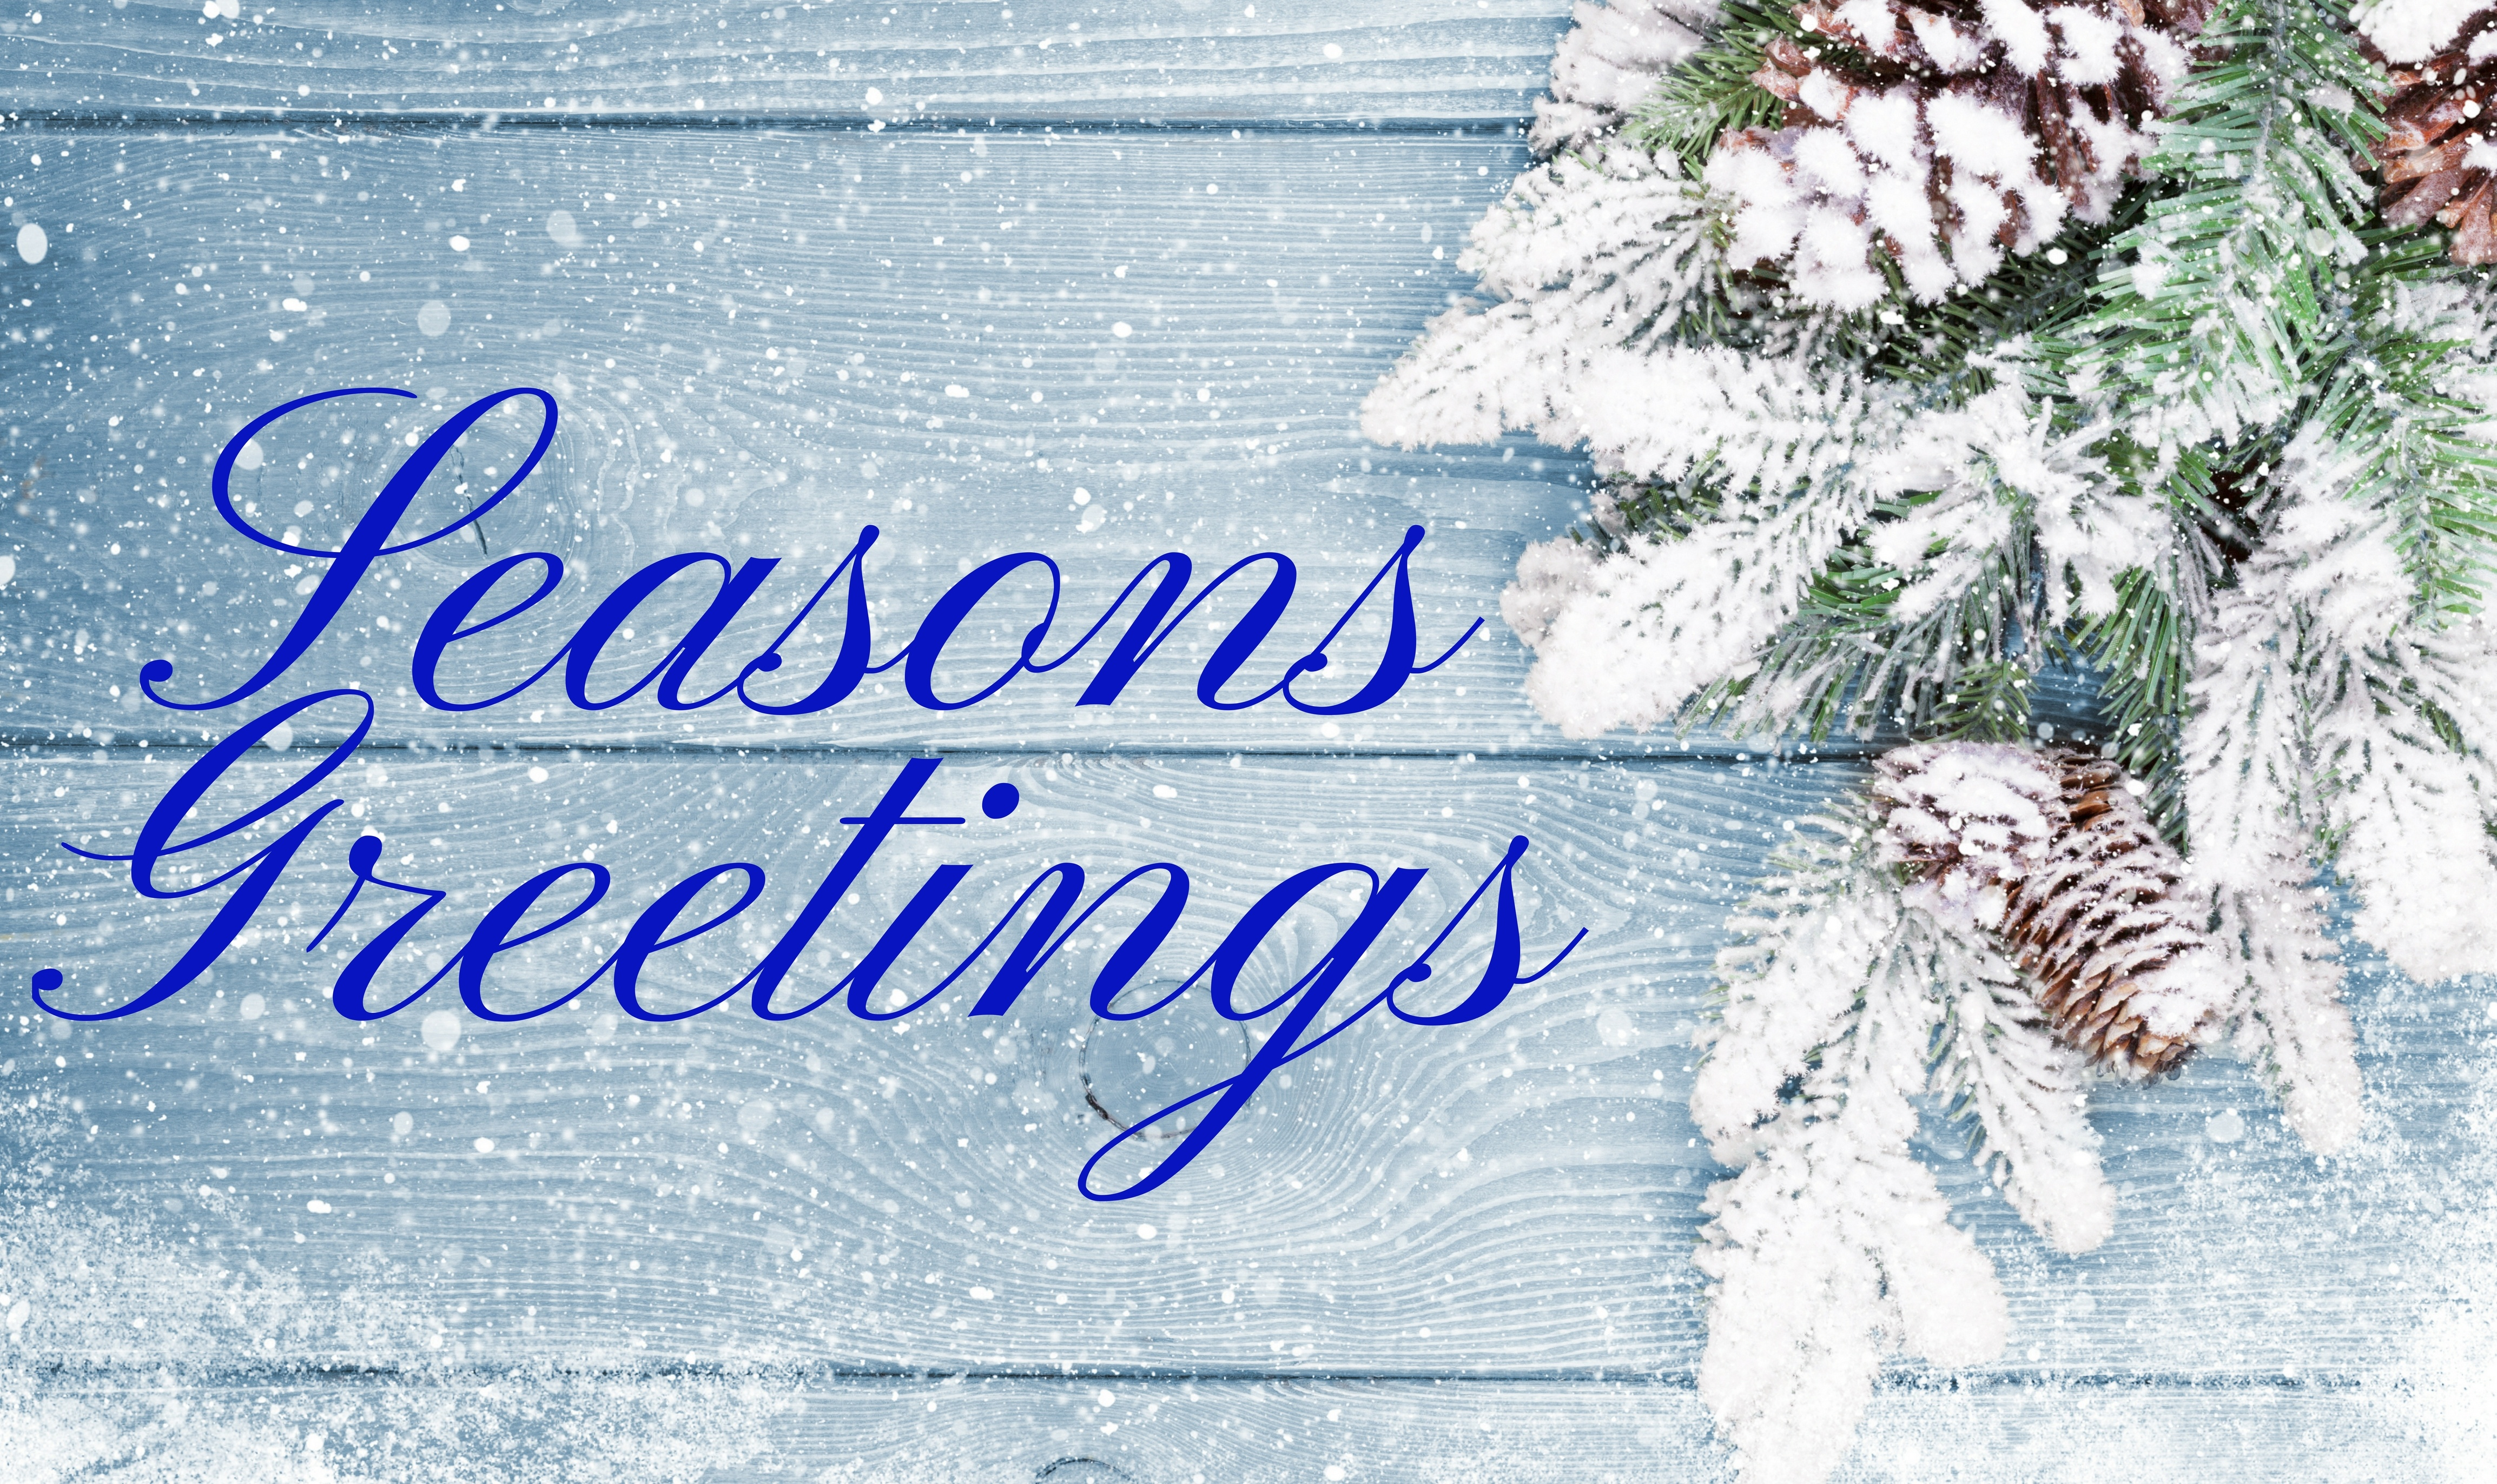 Happy Holidays from The Anisa Group